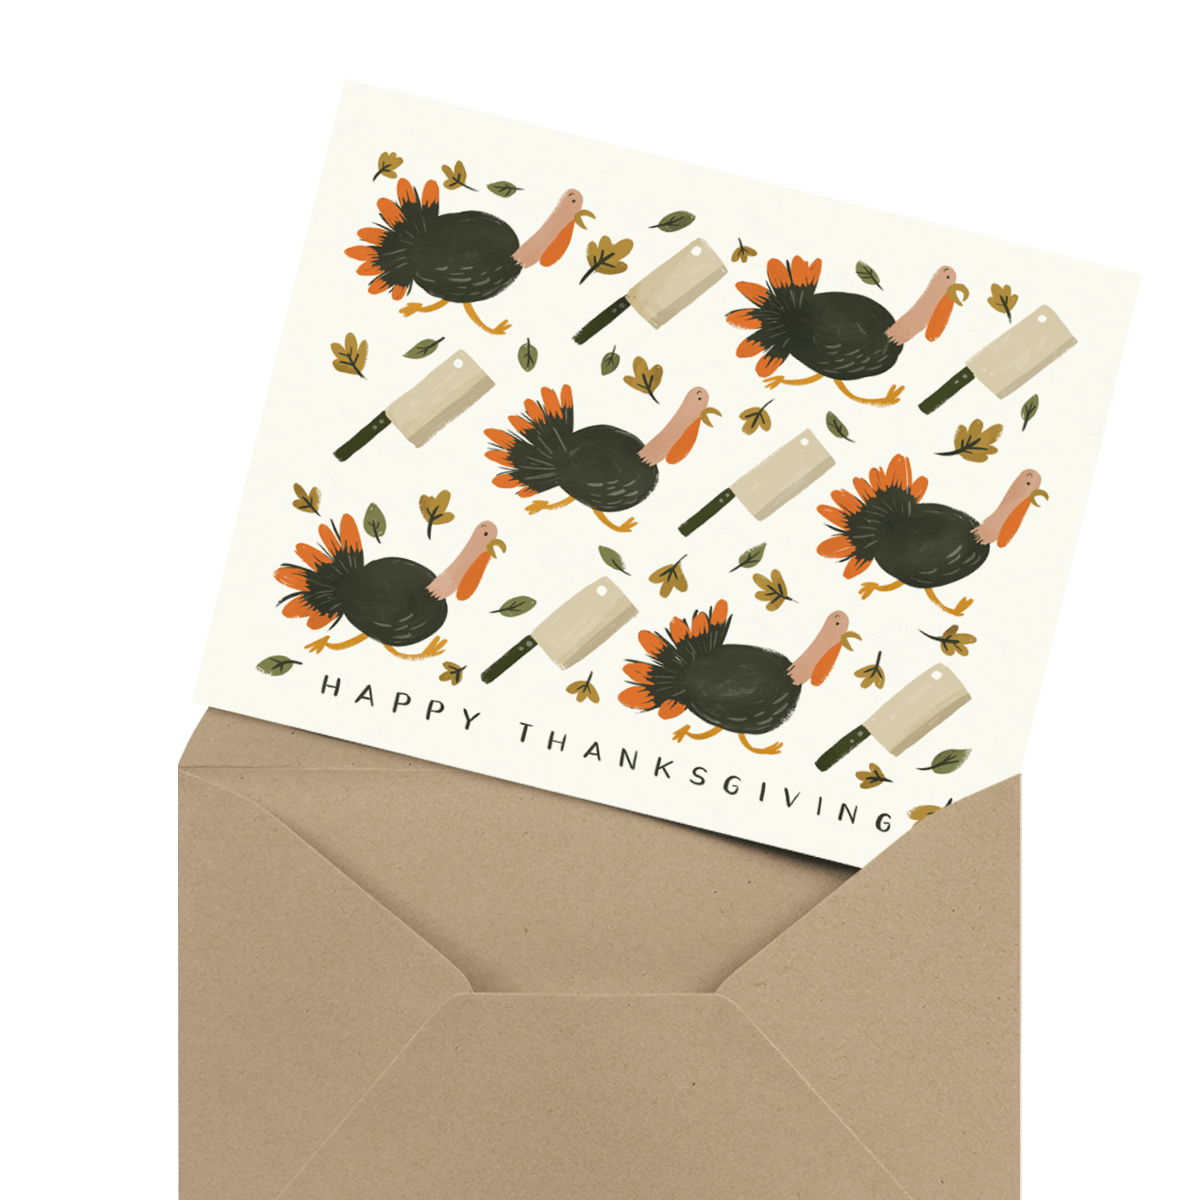 painted turkeys happy thanksgiving card in envelope